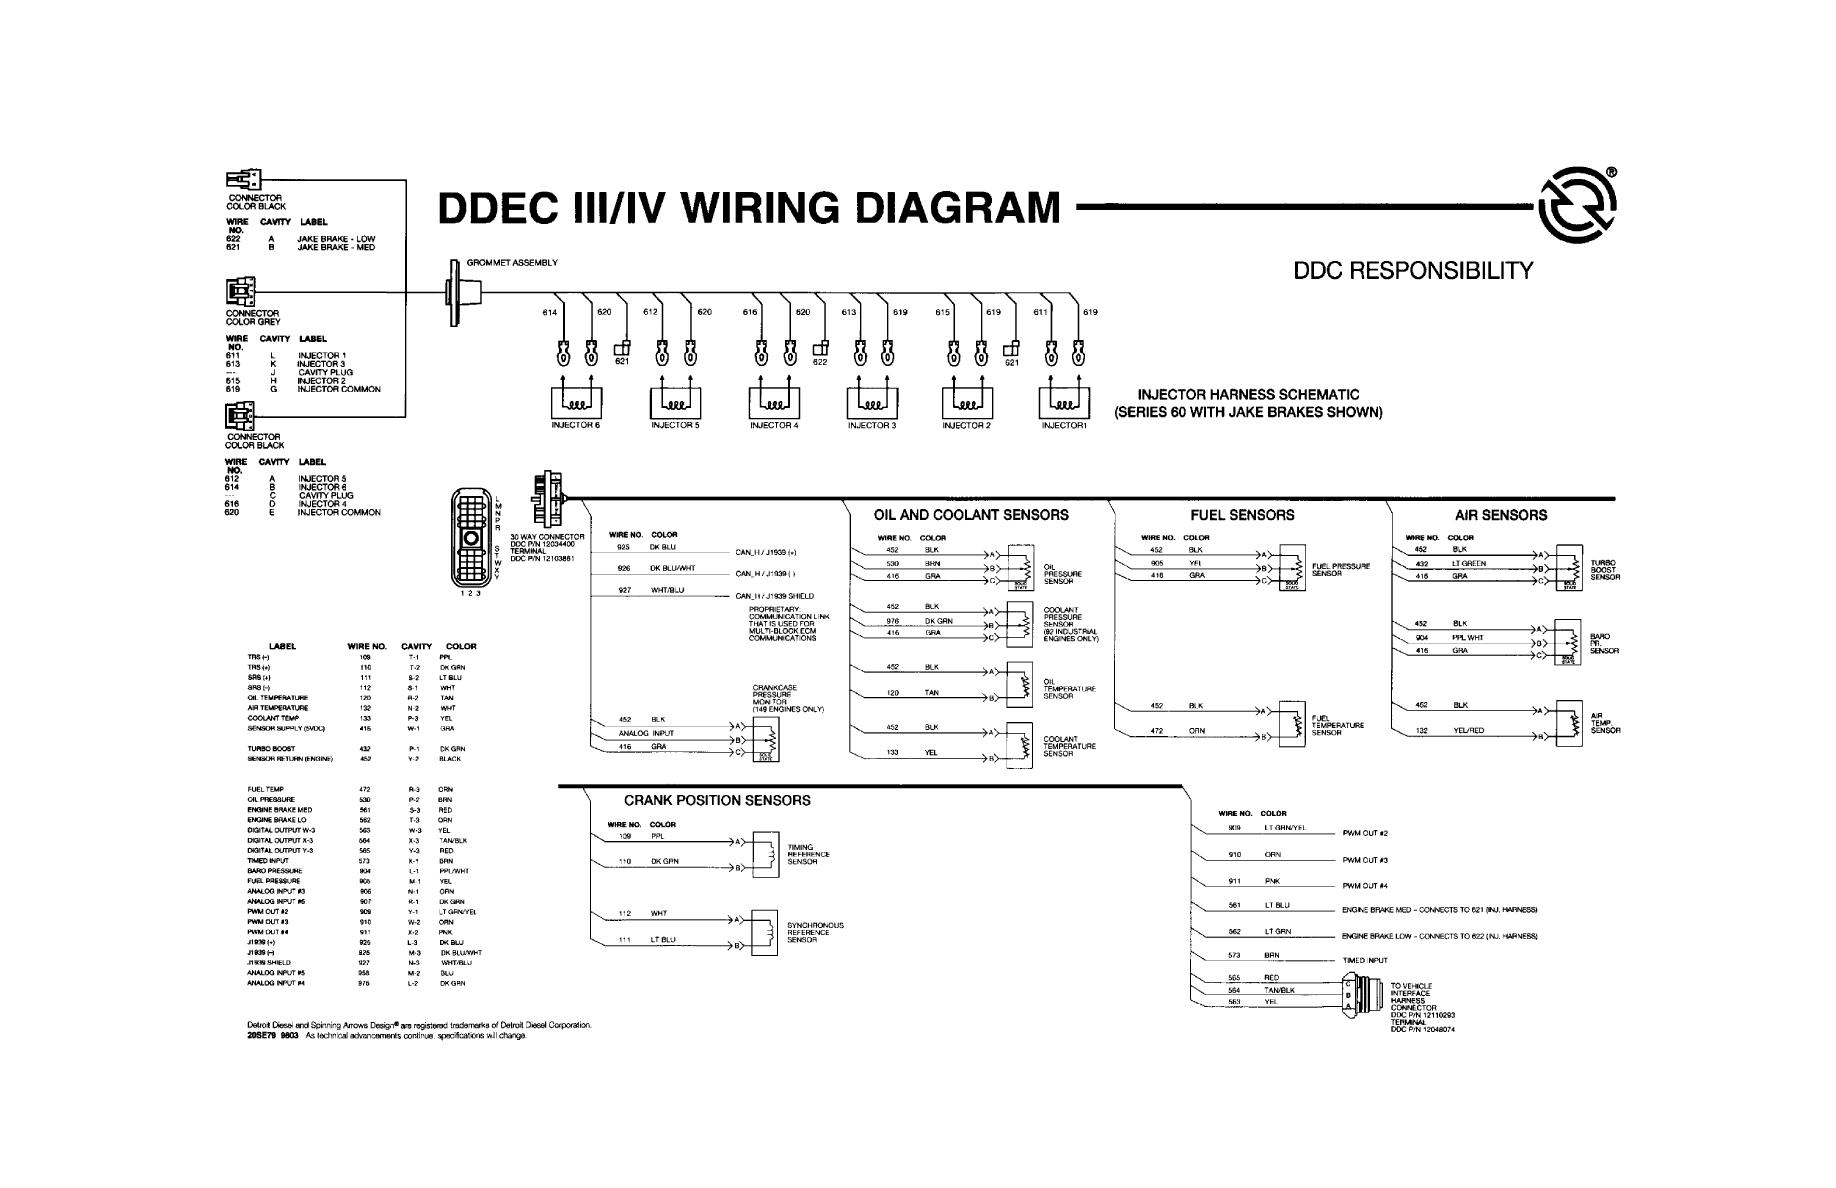 Wiring Schematic Ddec - Schema Wiring Diagrams on